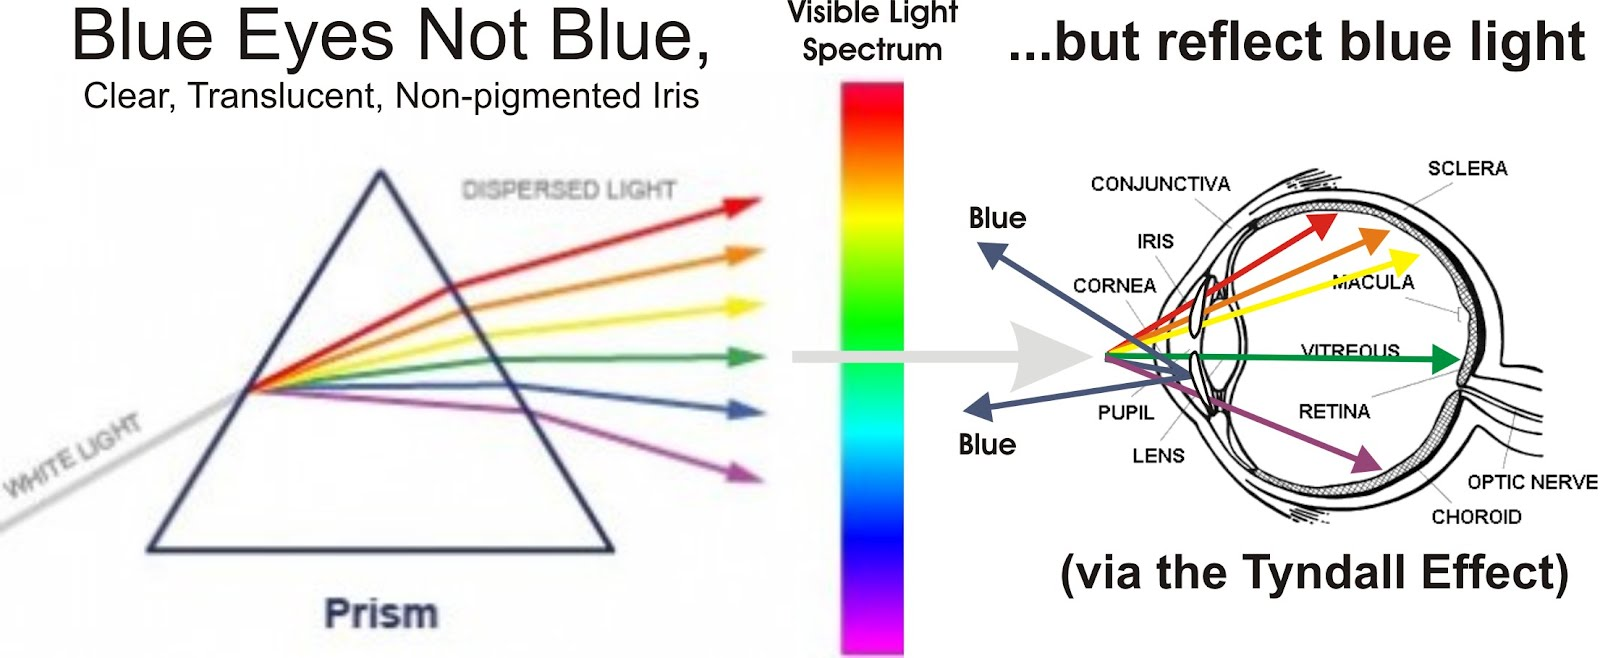 medium resolution of acting white acting black blue eyes not really blue the tyndall effect snake eye diagram blue eye diagram